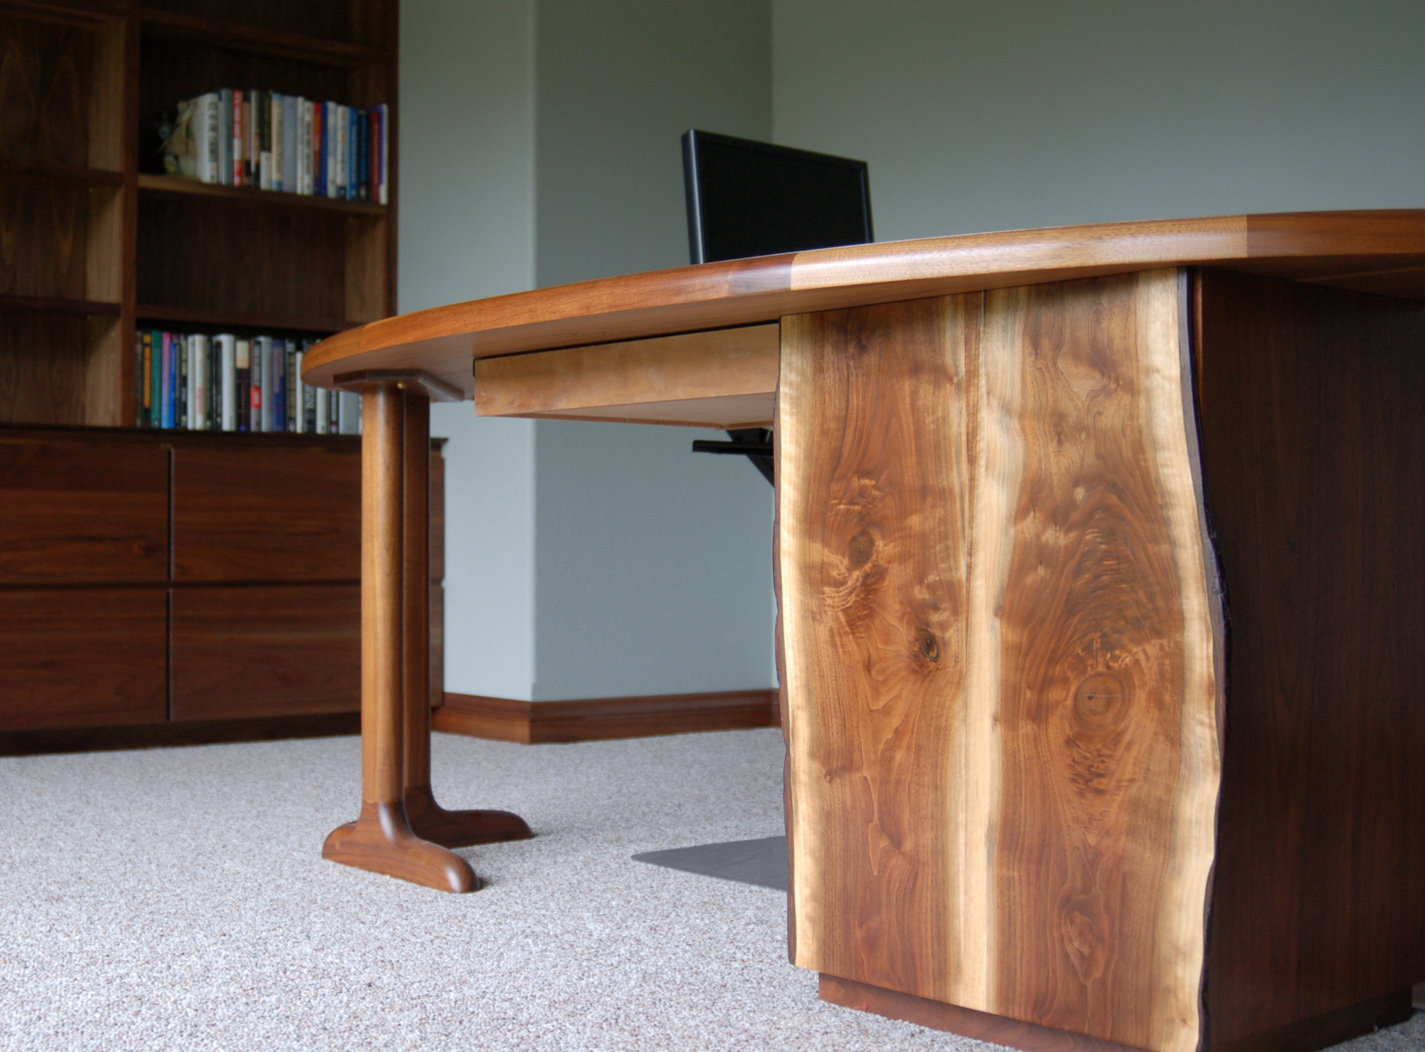 marcum-desk-detail.jpg